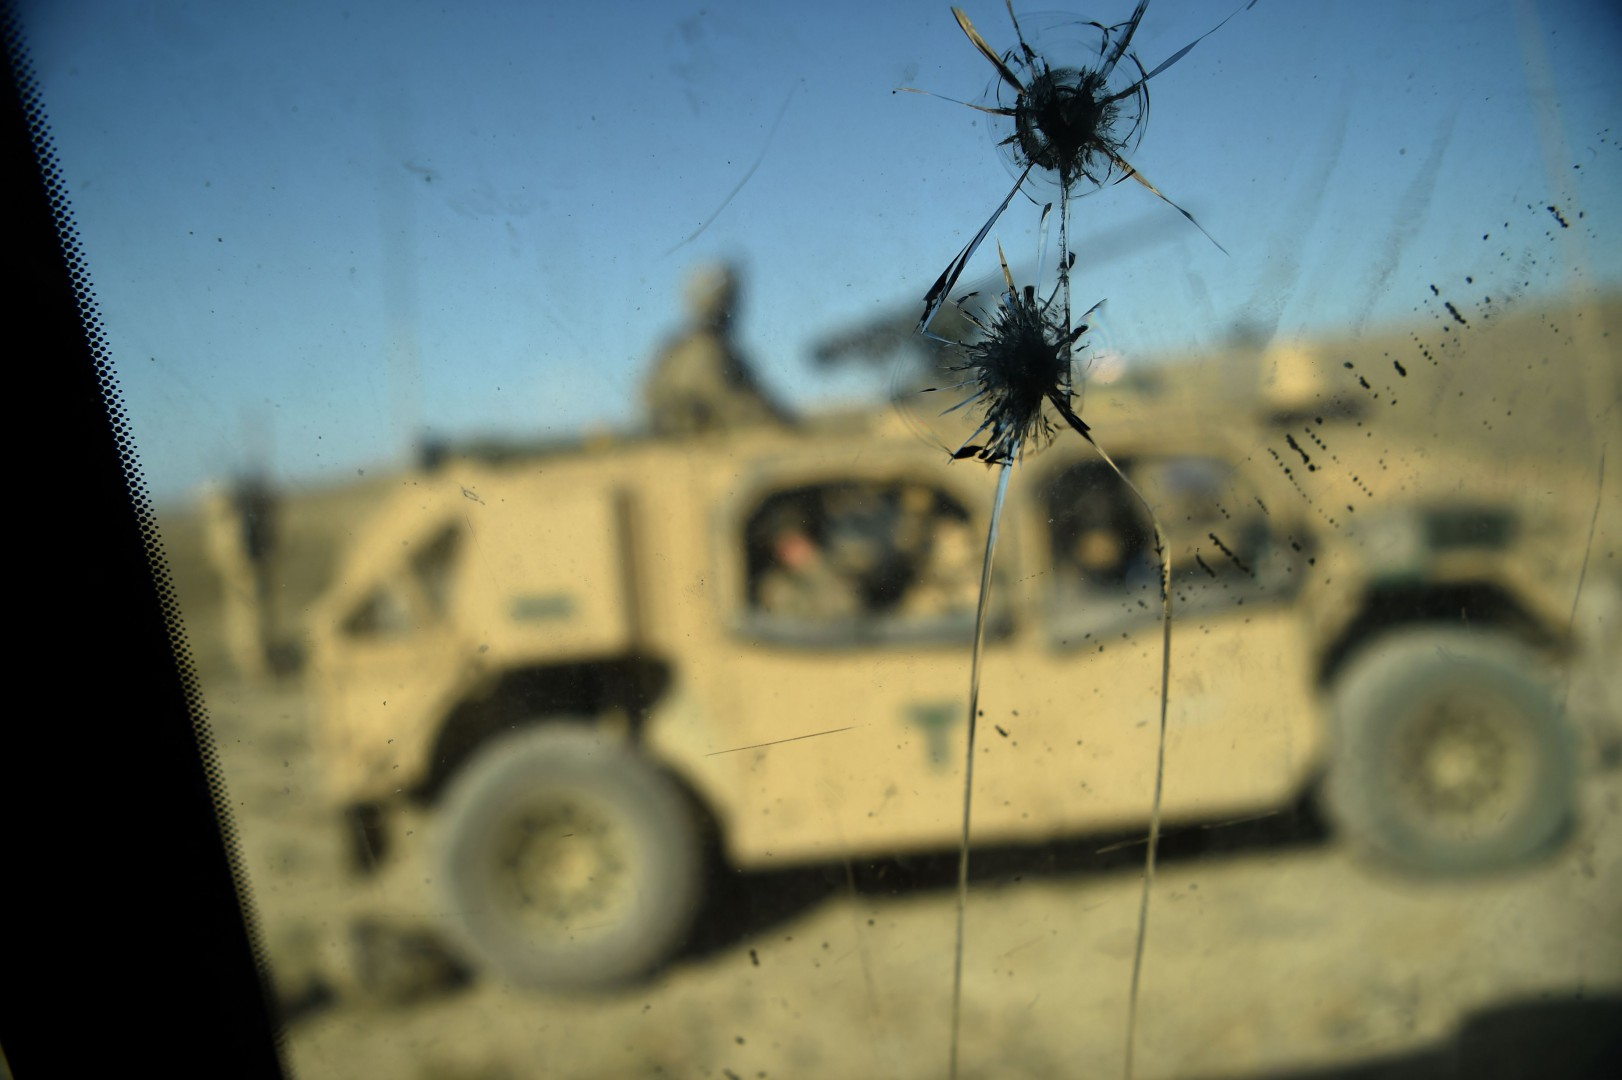 (FILES) In this file photo taken on July 07, 2018 US Army soldiers from NATO are seen through a cracked window of an armed vehicle in a checkpoint during a patrol against Islamic State militants at the Deh Bala district in the eastern province of Nangarhar Province. - The Afghan conflict could overtake Syria as the deadliest conflict in the world this year, analysts say, as violence surges 17 years after the US-led invasion. (Photo by WAKIL KOHSAR / AFP)